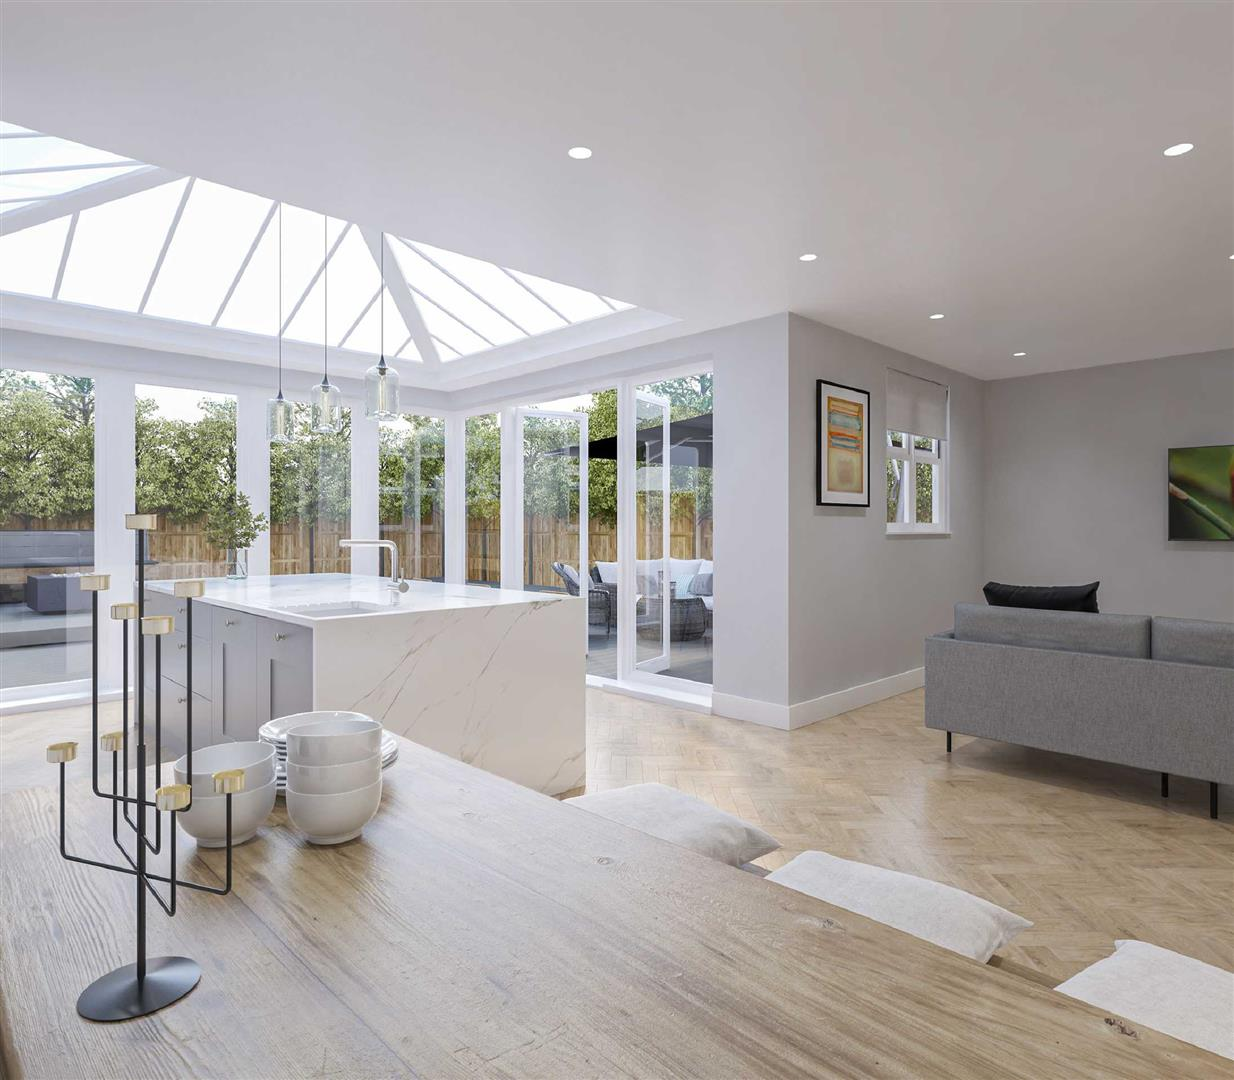 5 Bedroom Detached House For Sale - Image 5